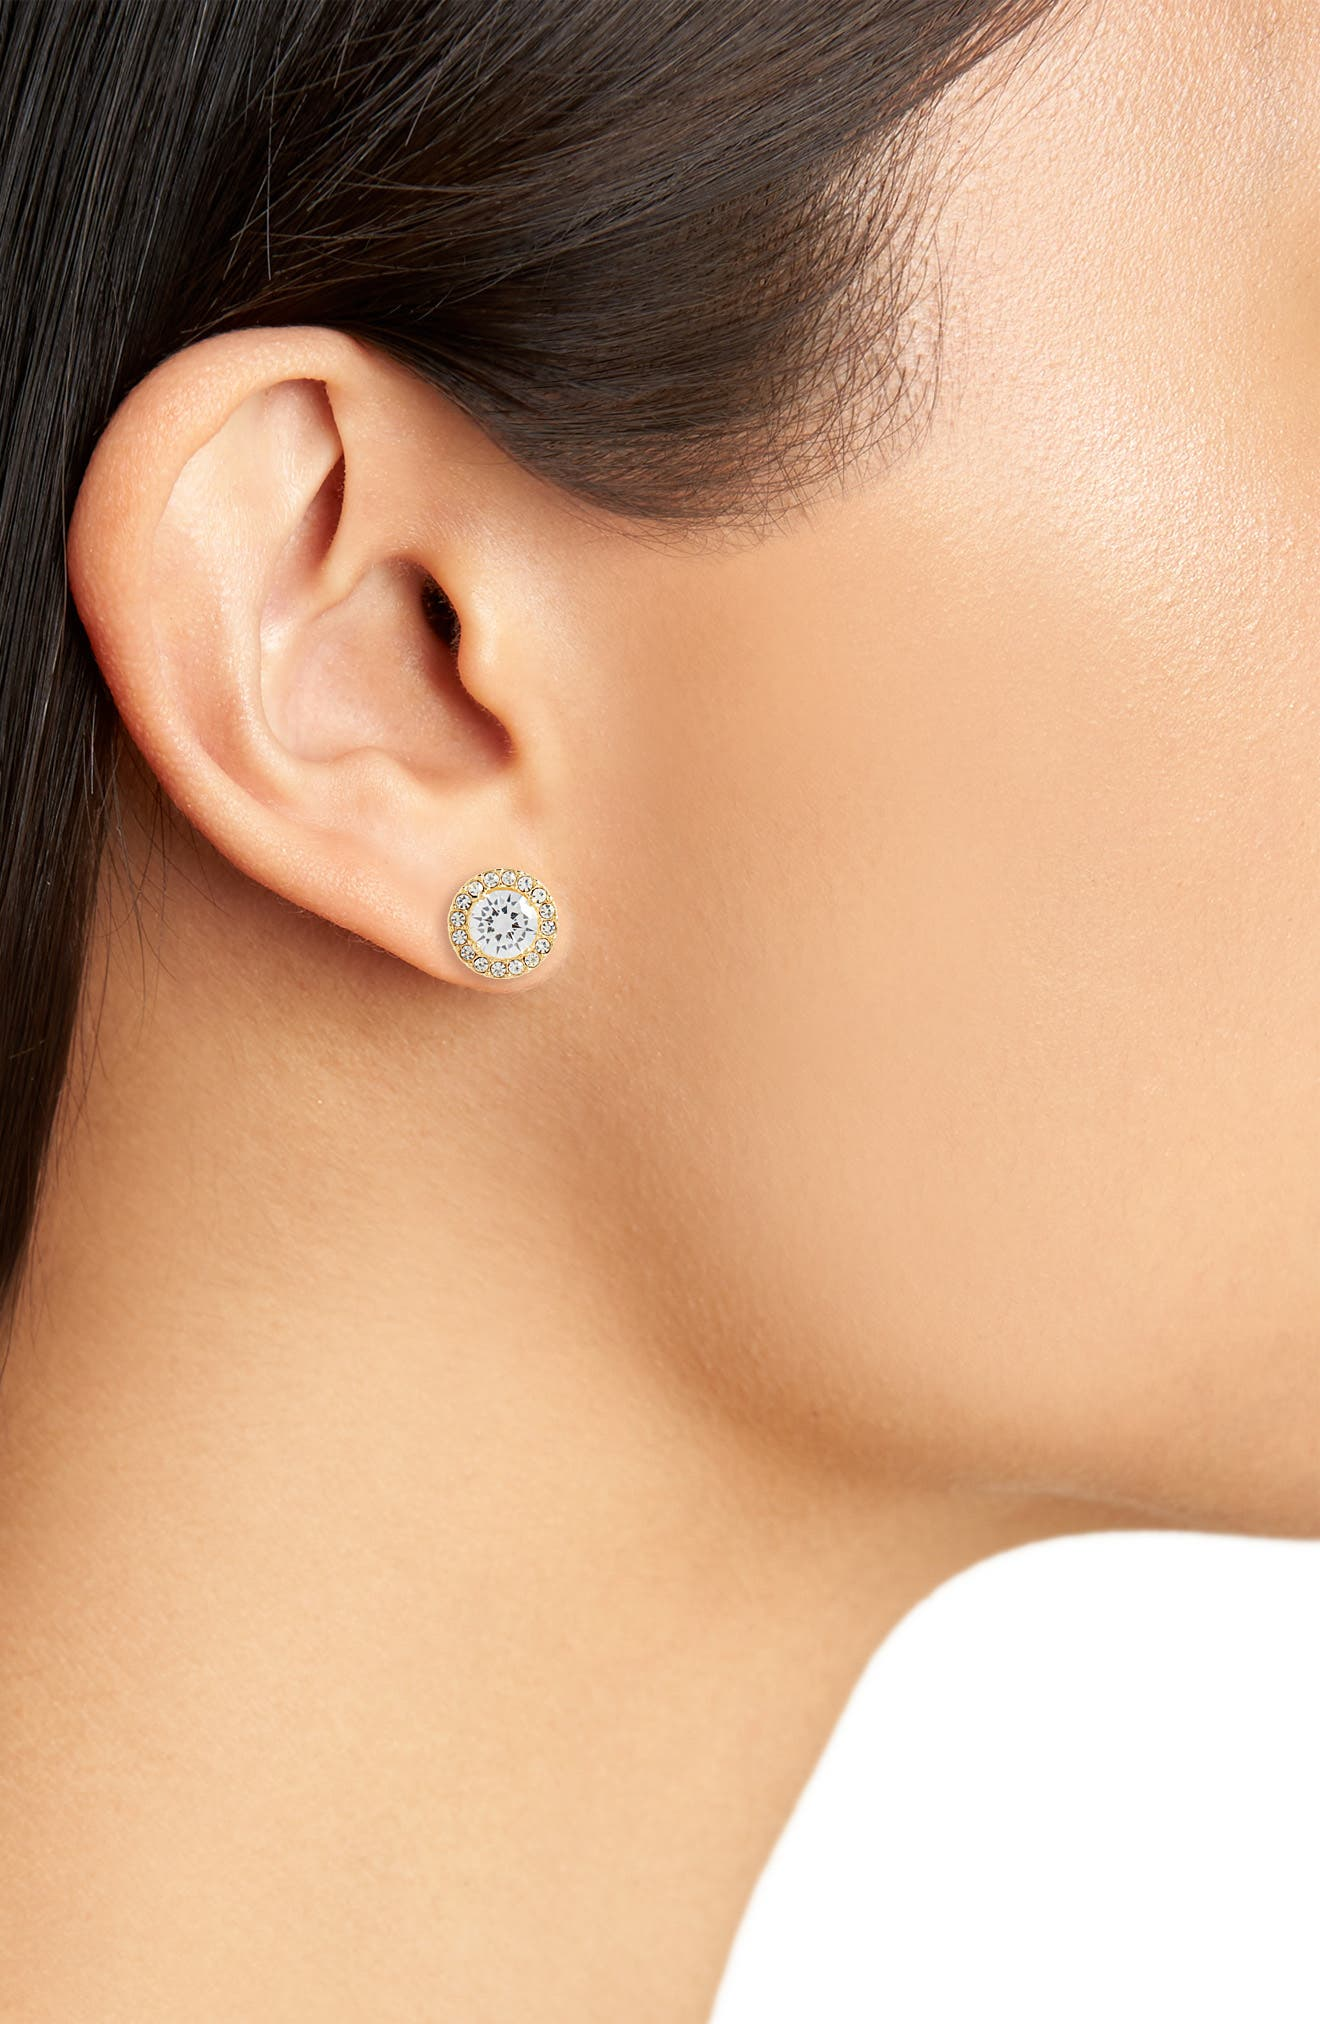 Halo Cubic Zirconia Stud Earrings,                             Alternate thumbnail 2, color,                             CLEAR- GOLD